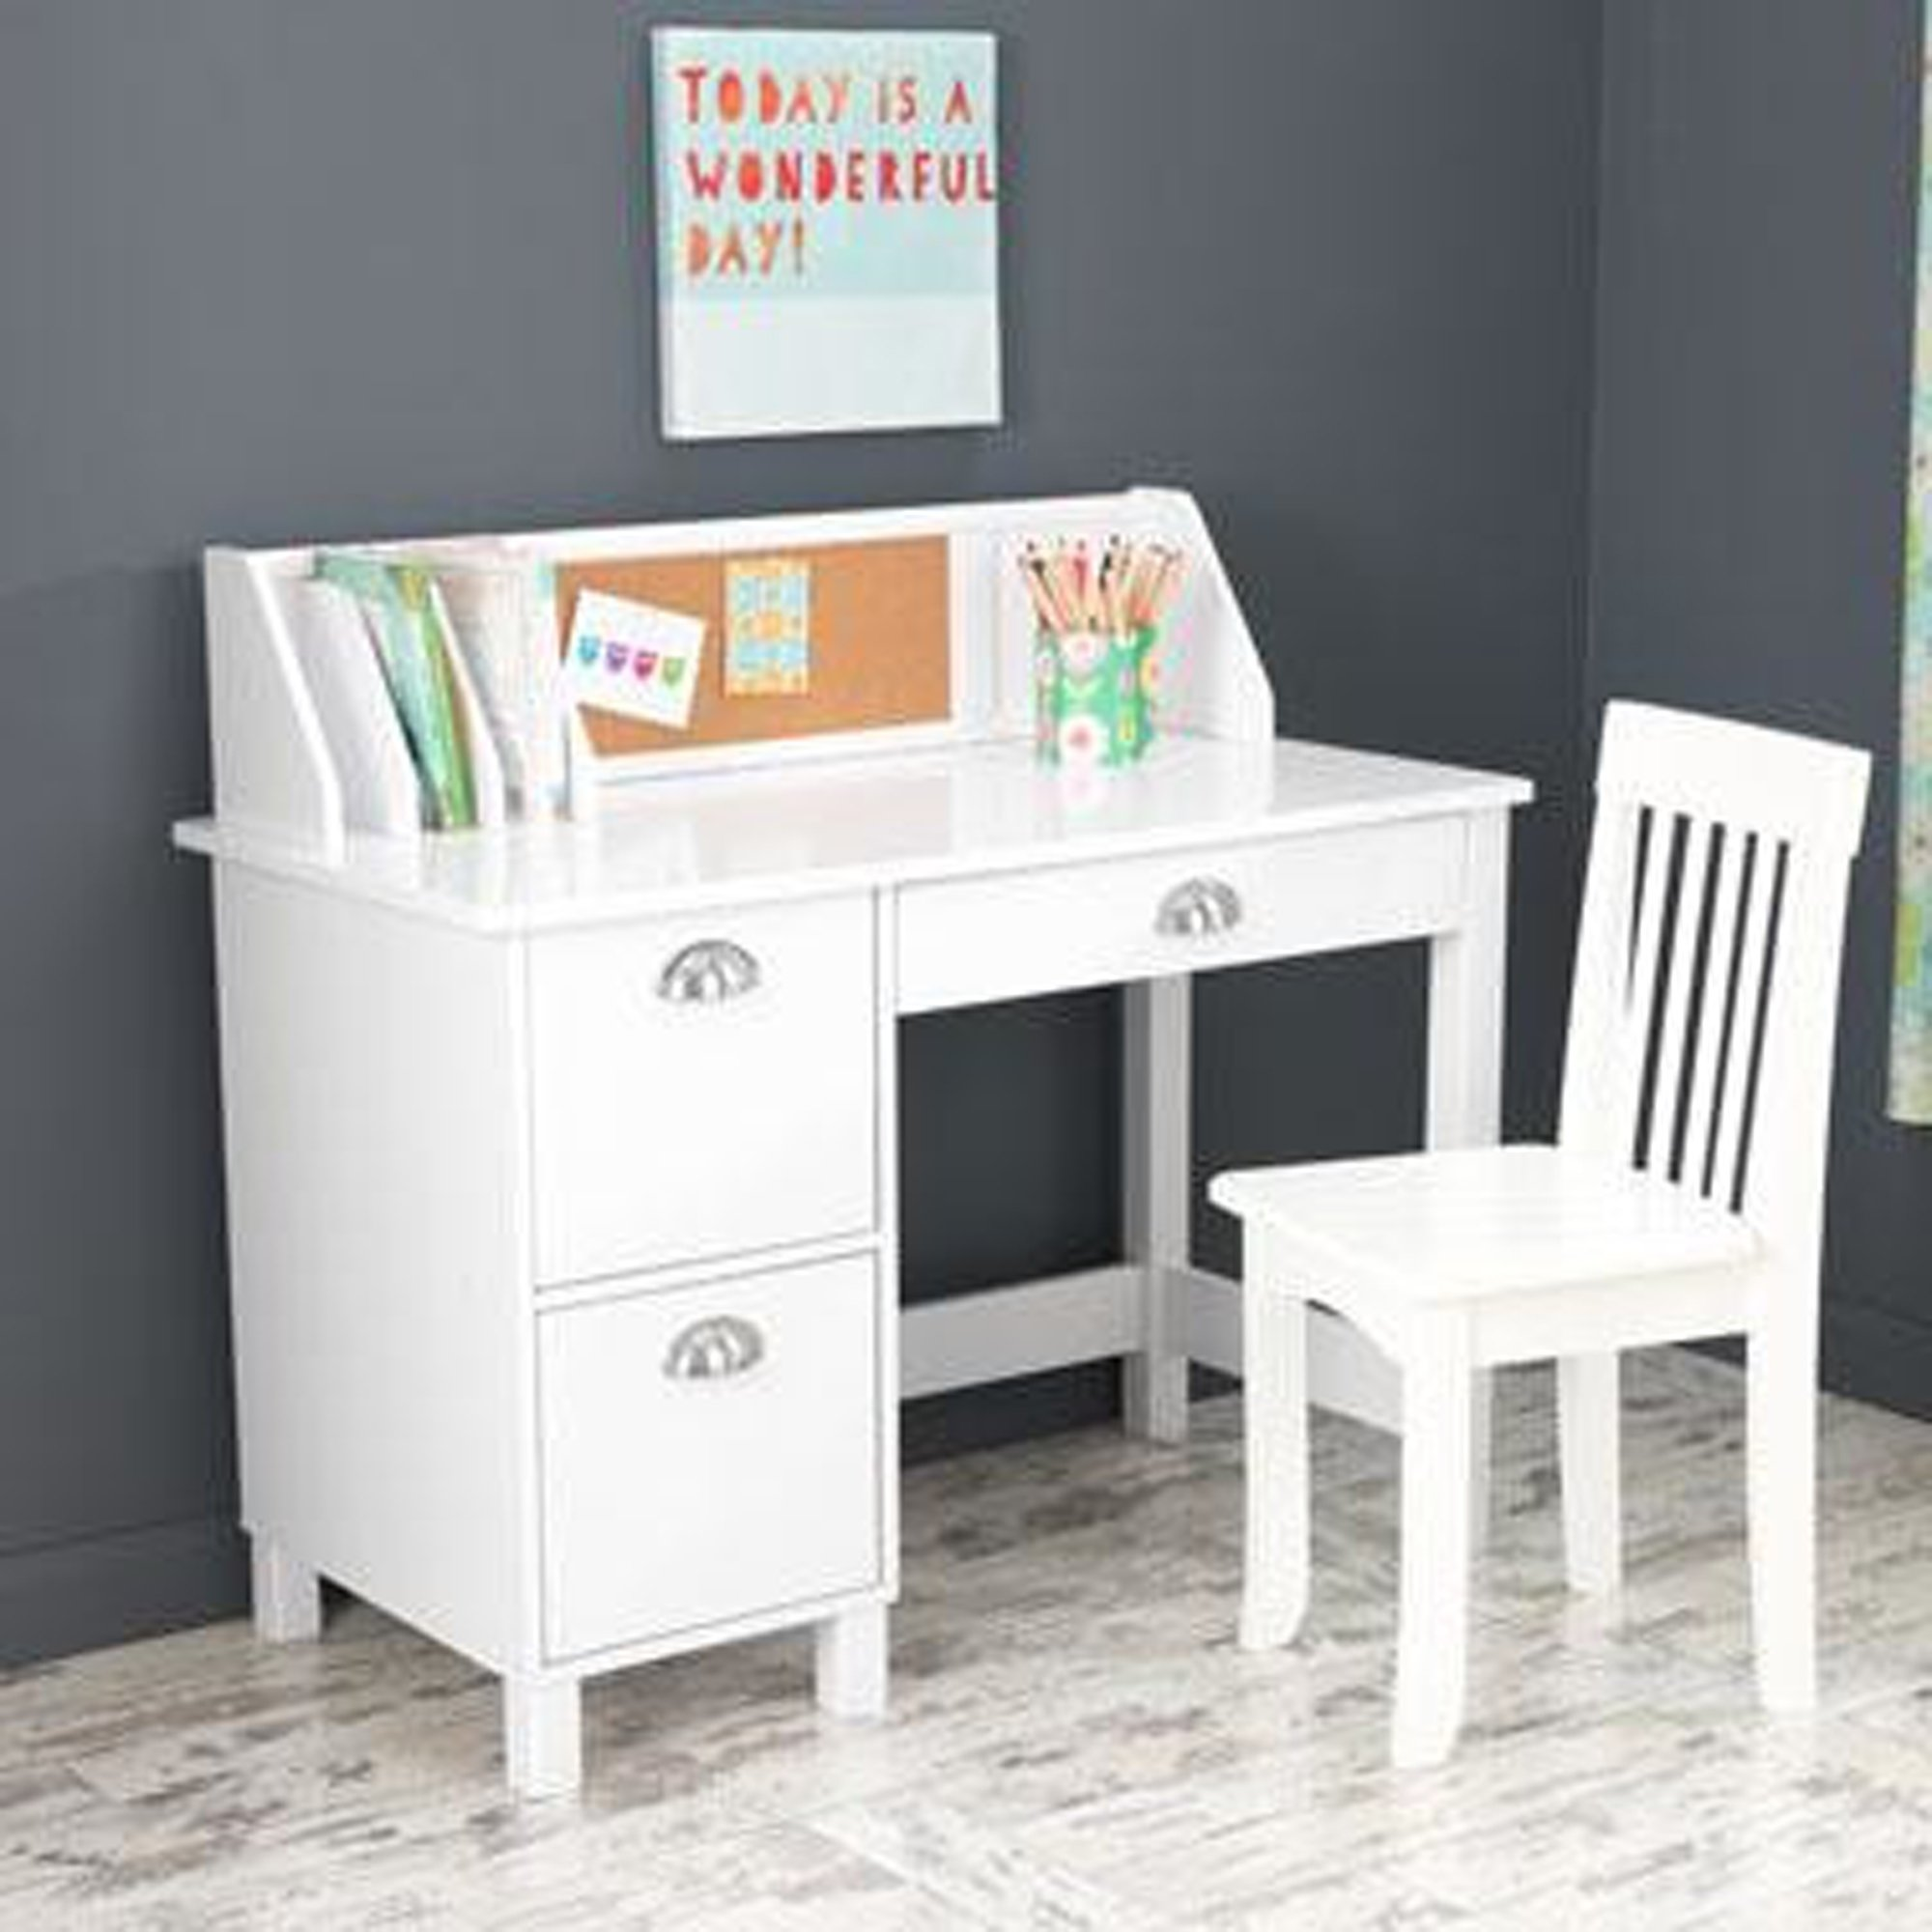 Kids Desk With Chair And Storage Set - Activity Study Writing Table With Hutch Corc Bulletin Board And File Organizer - Toddler Room Furniture (White)